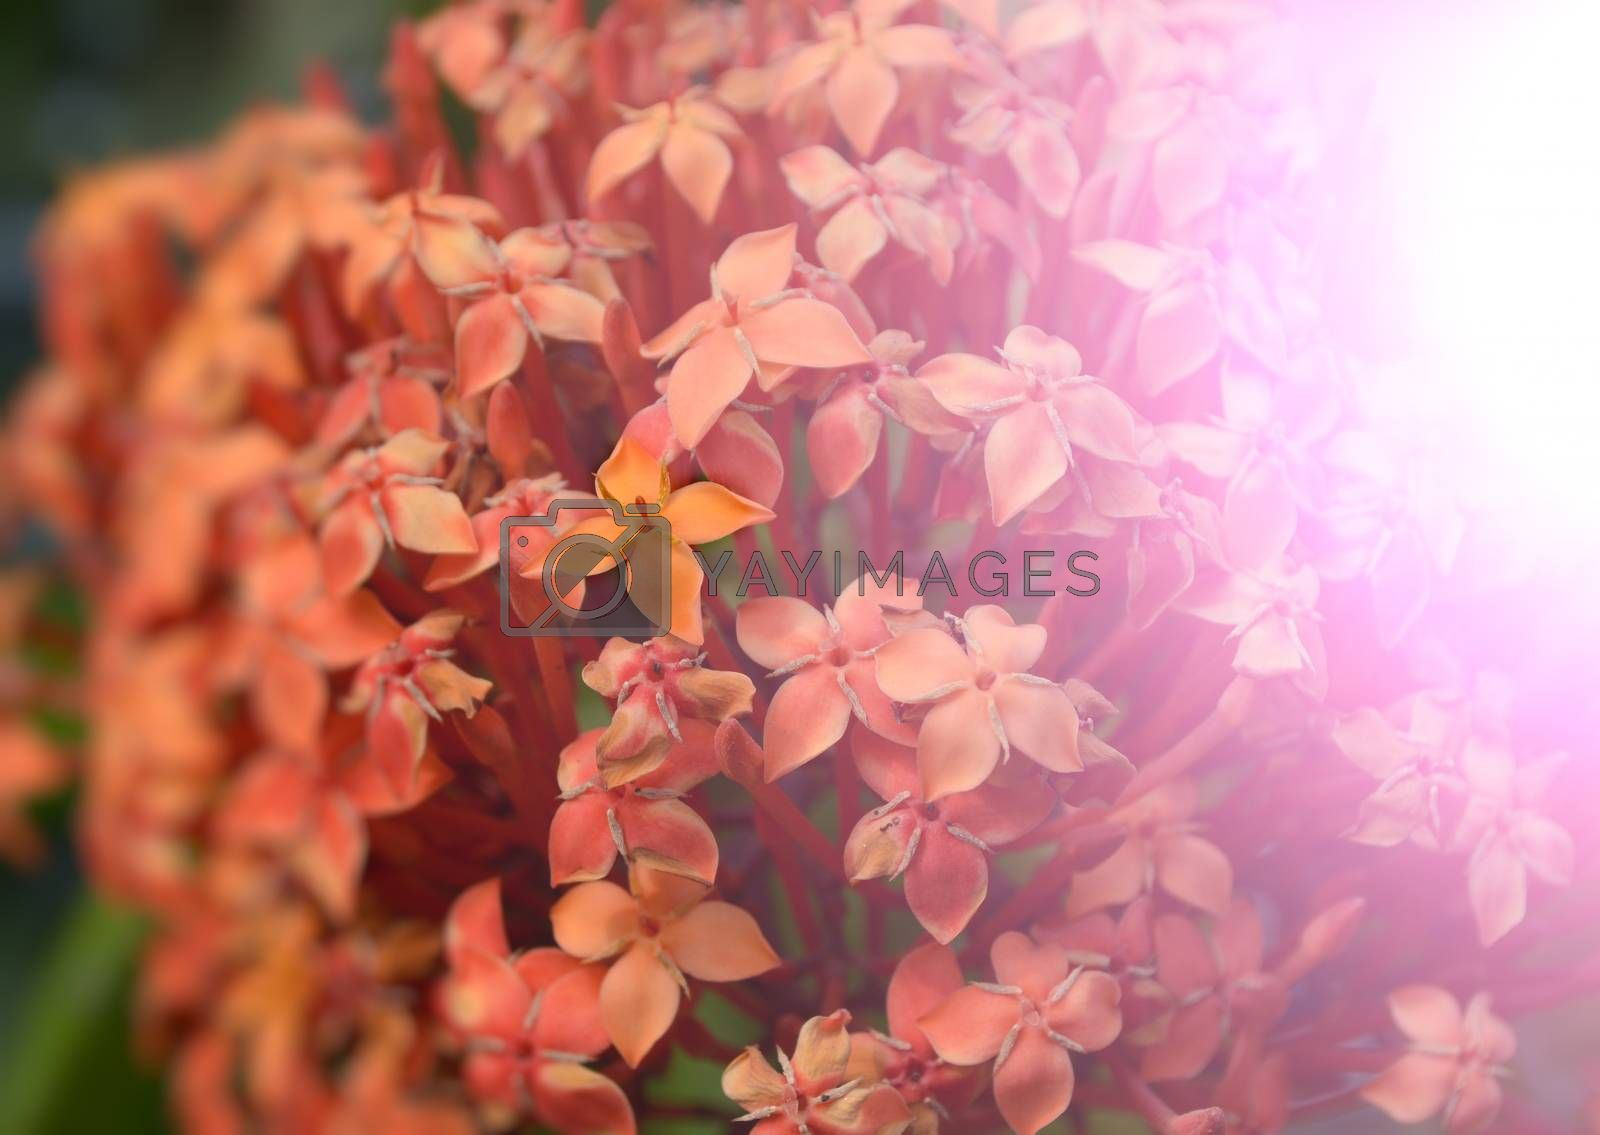 Flowers in the garden captured very closeup with sunlight